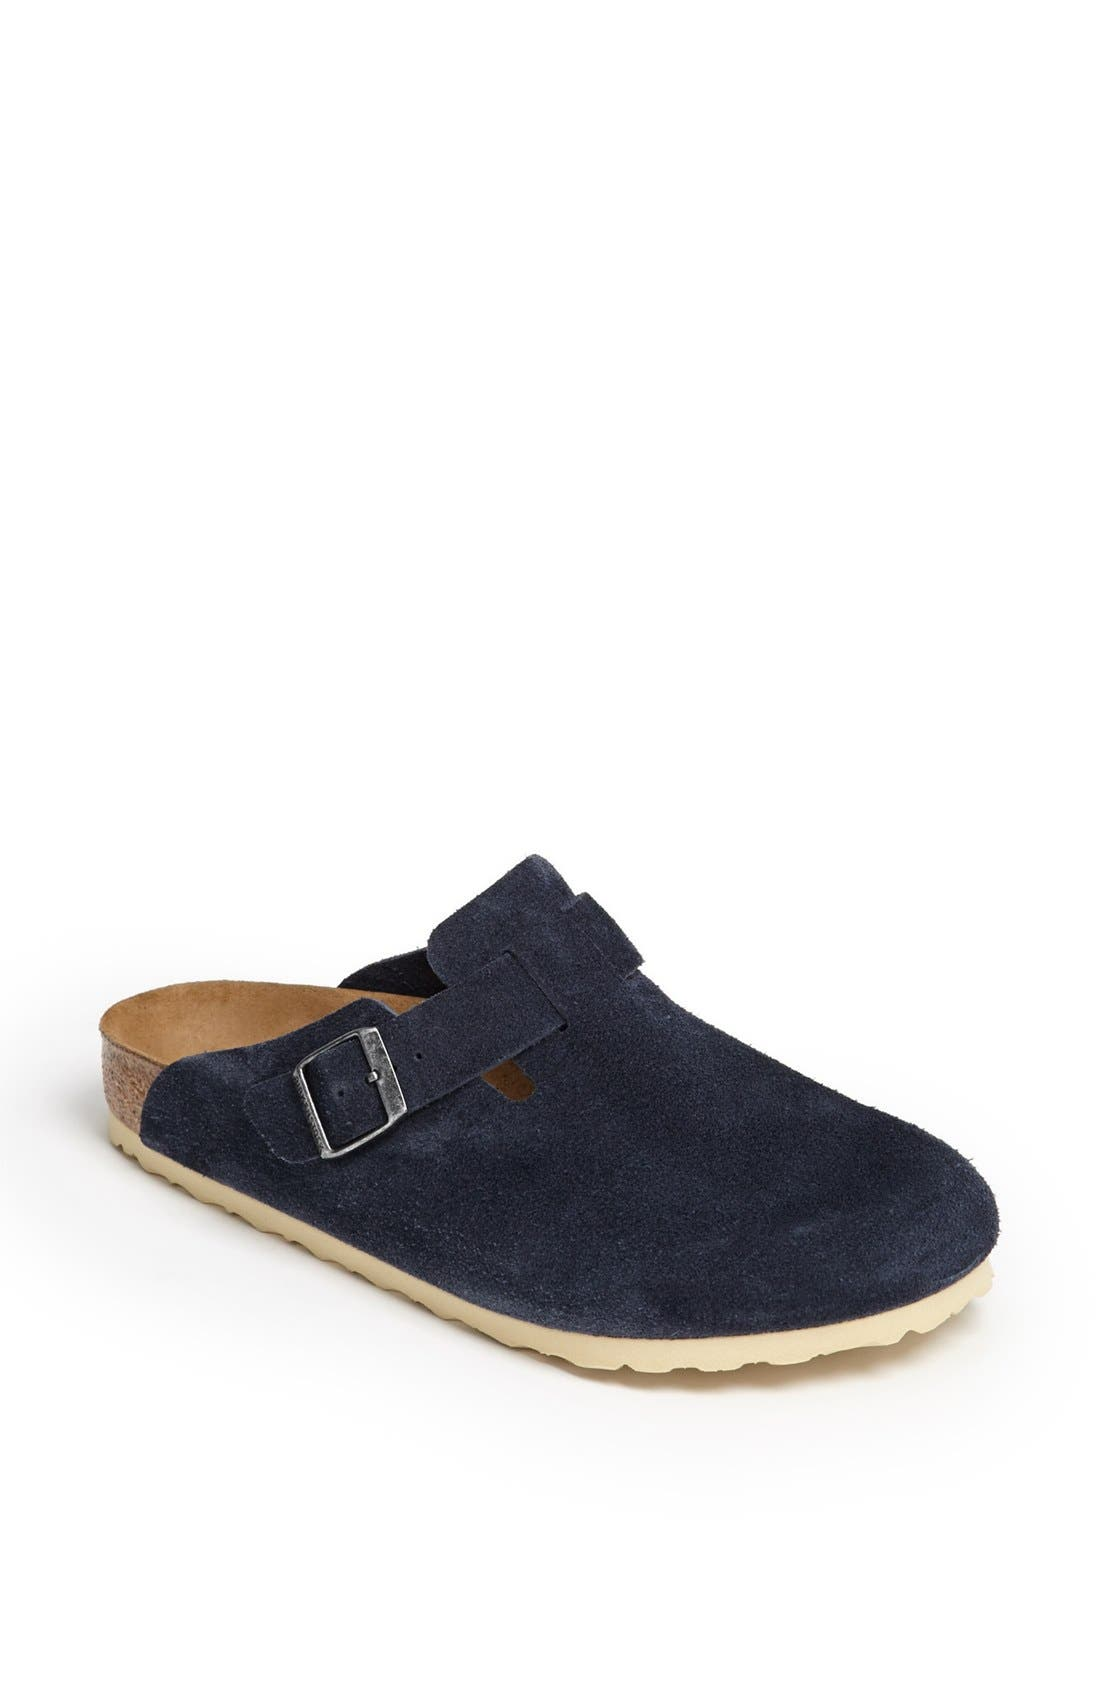 Alternate Image 1 Selected - Birkenstock 'Boston Soft' Suede Clog (Men)